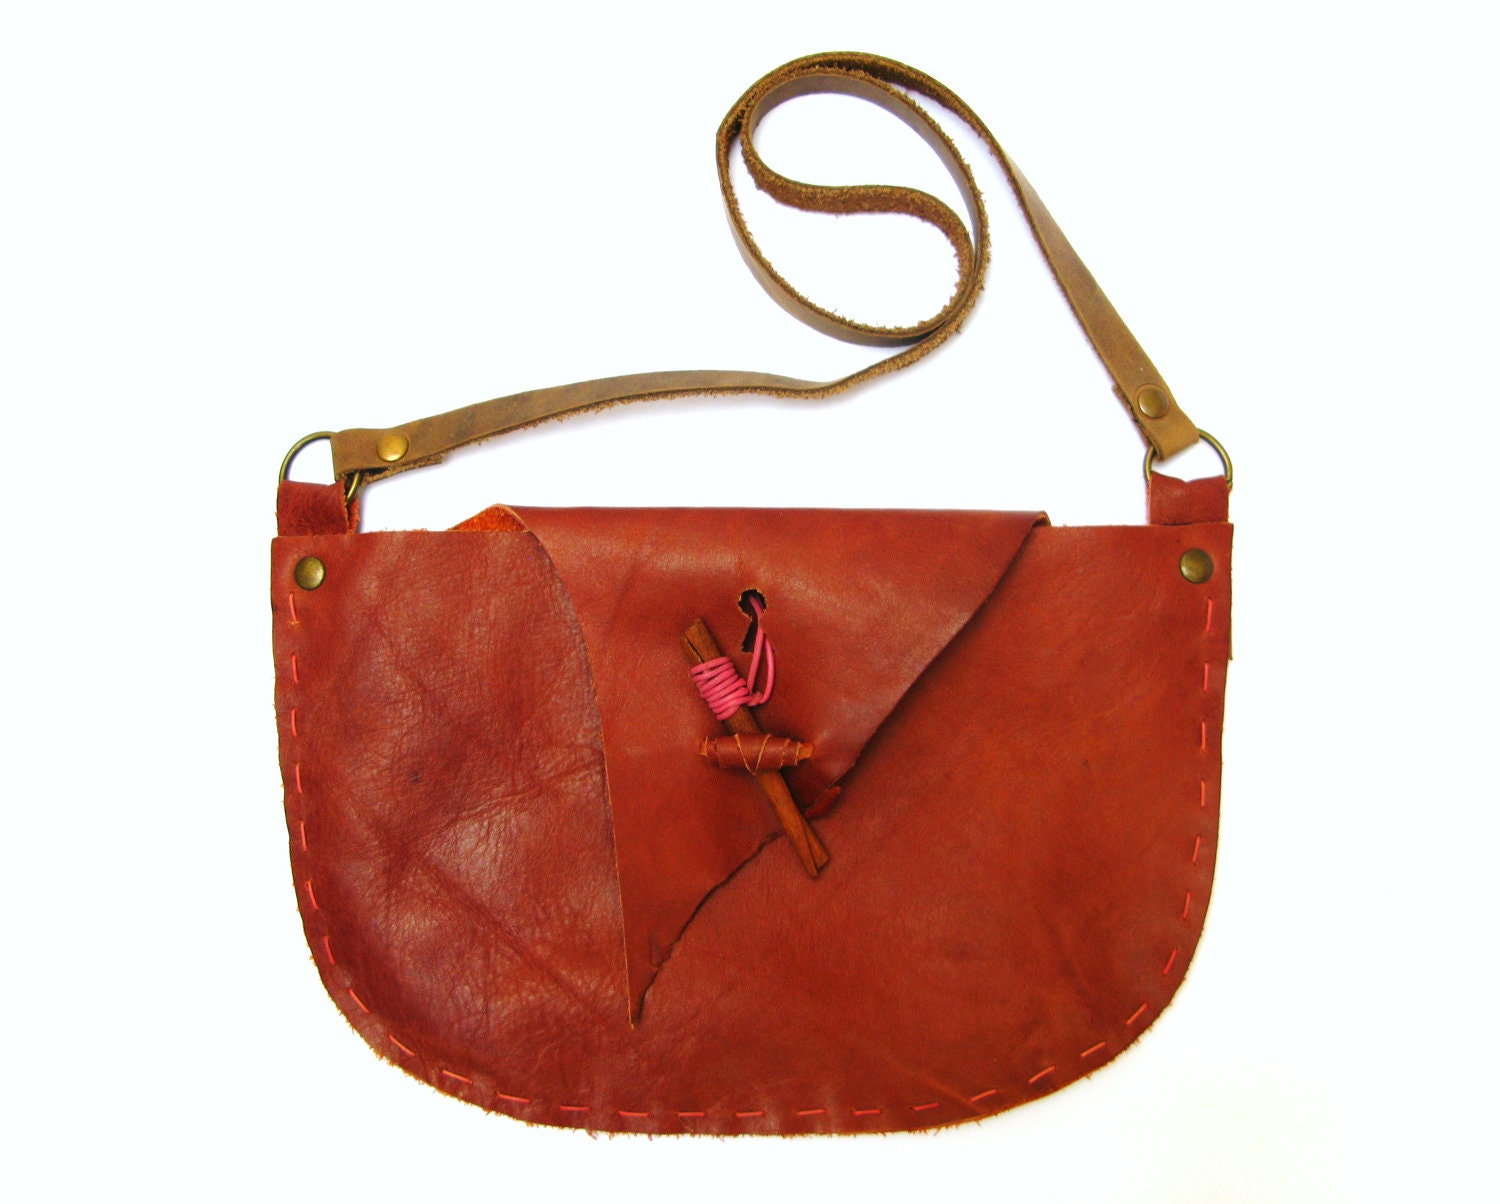 Autumn Fall, Hand Stitched Shoulder Bag Purse in Rusty Orange Leather with Cinnamon Stick Closure,OOAK - askidas